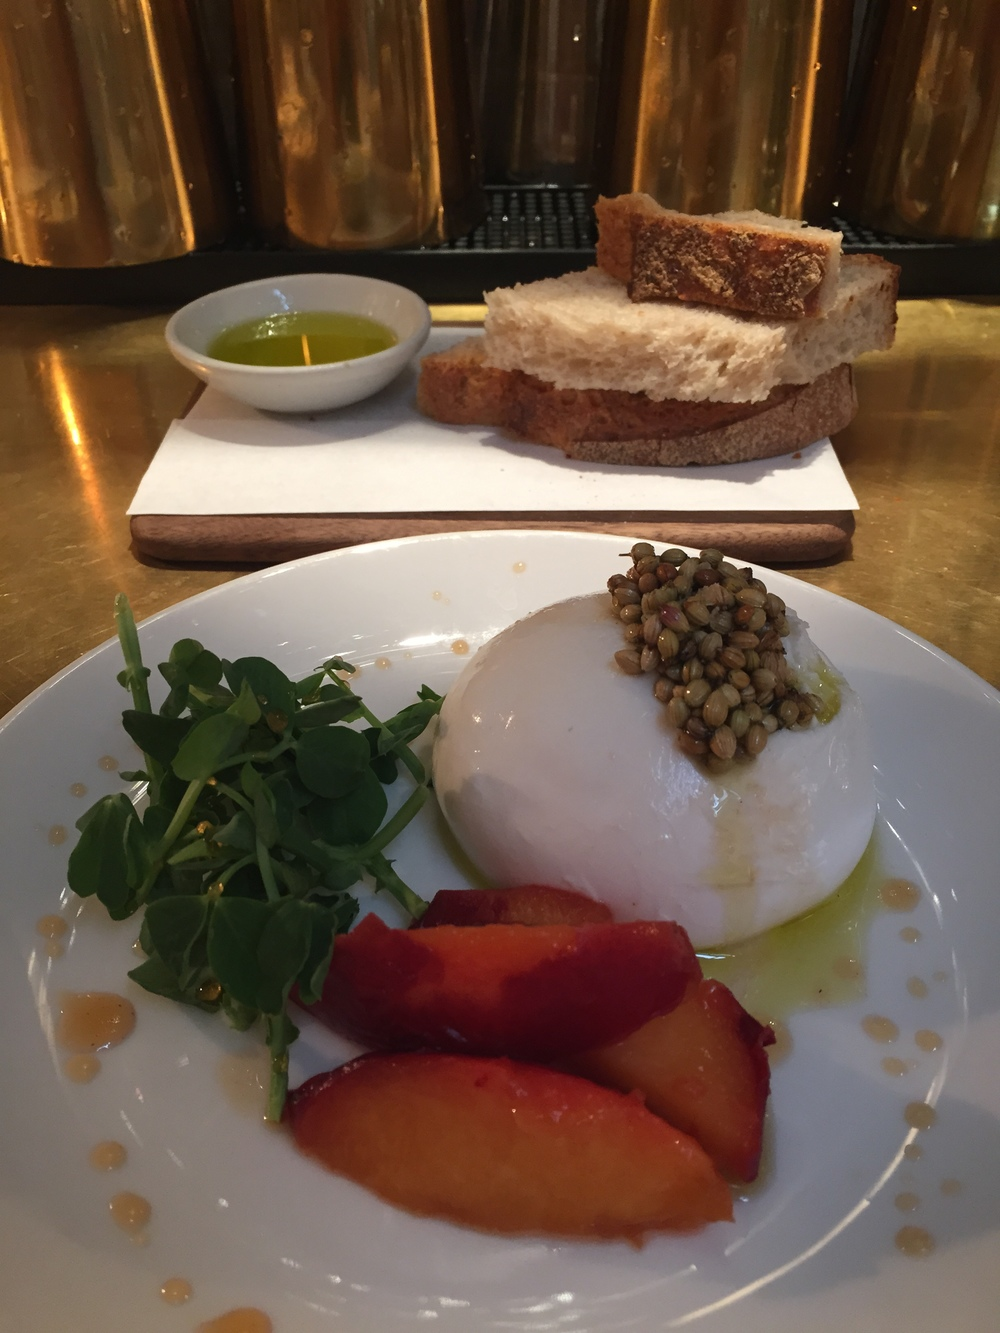 NOPI's exquisite Burrata with flavored peaches. YUM.